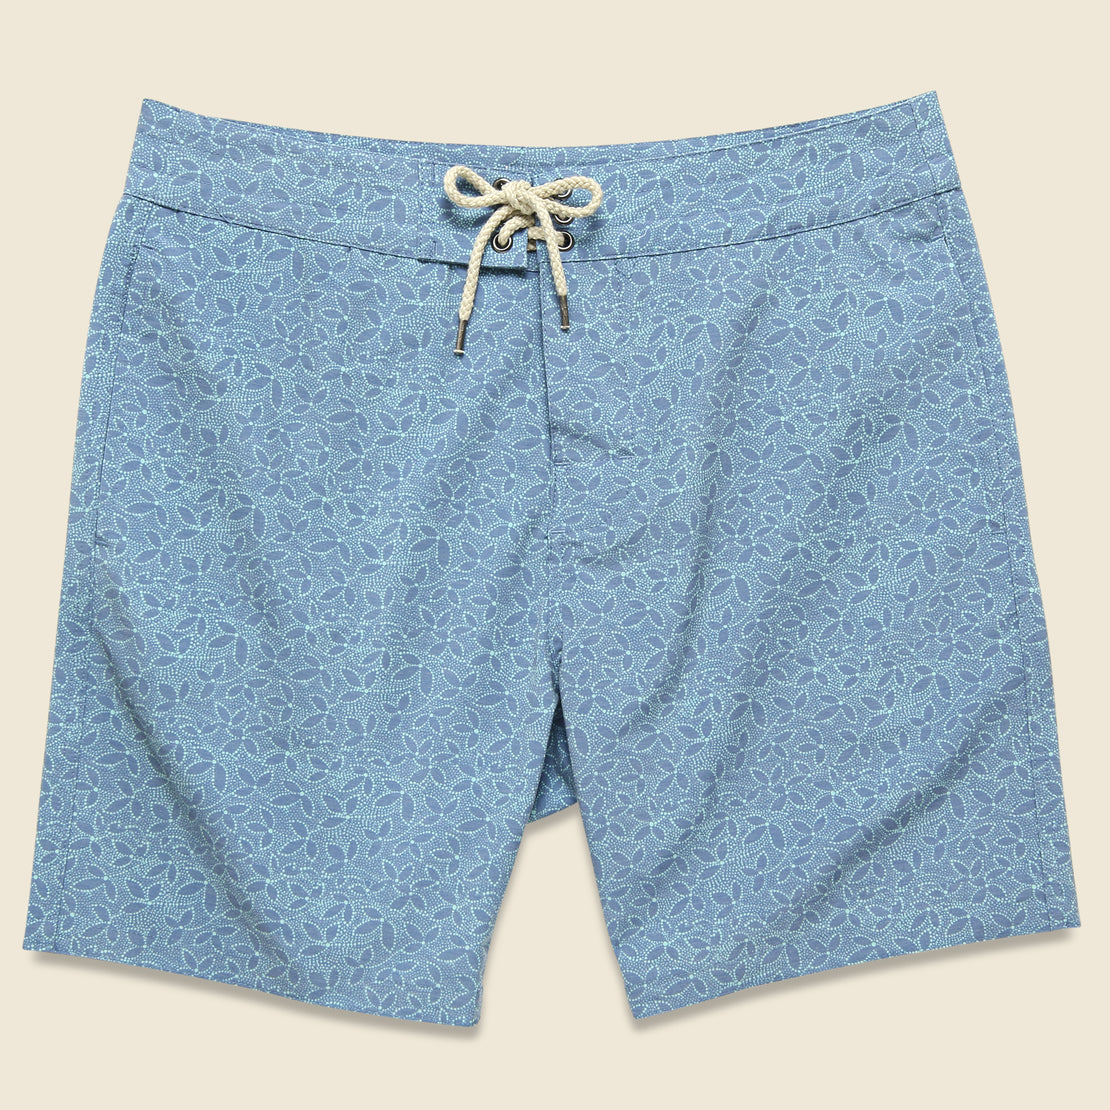 "Faherty Classic 7"" Boardshort - Teal Ivy"